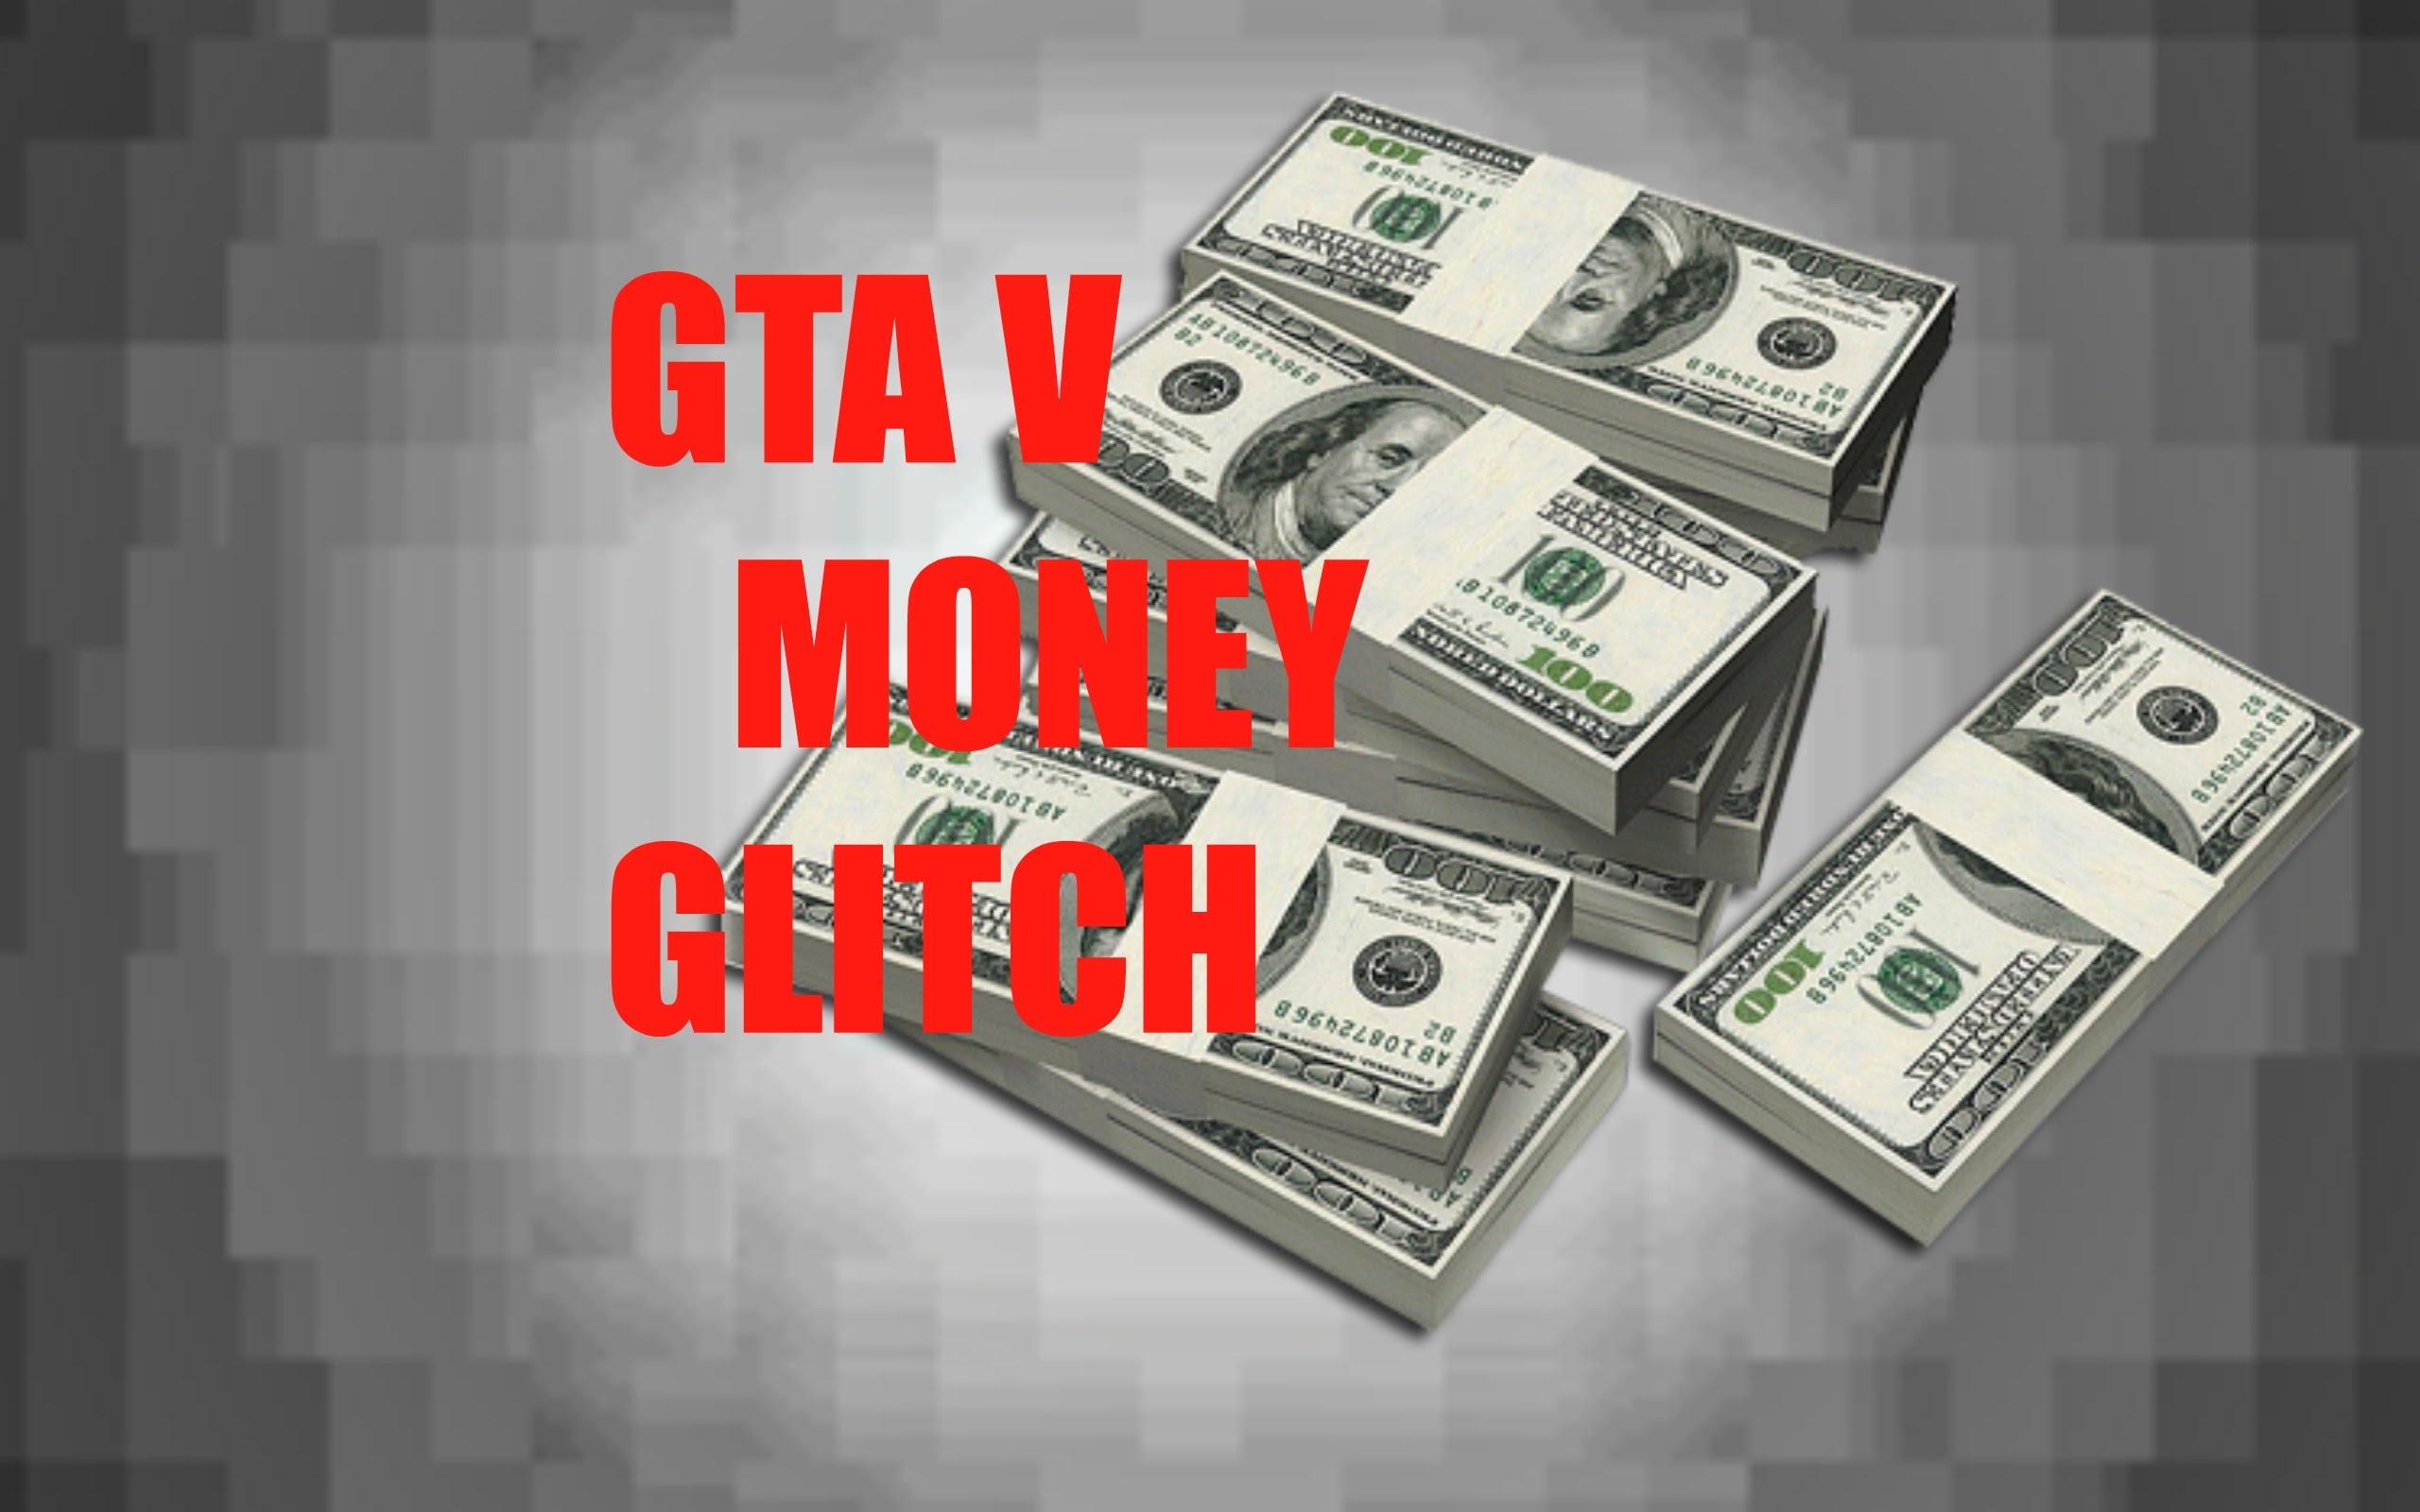 Gta V Money Cheat – Is There Anything Like That